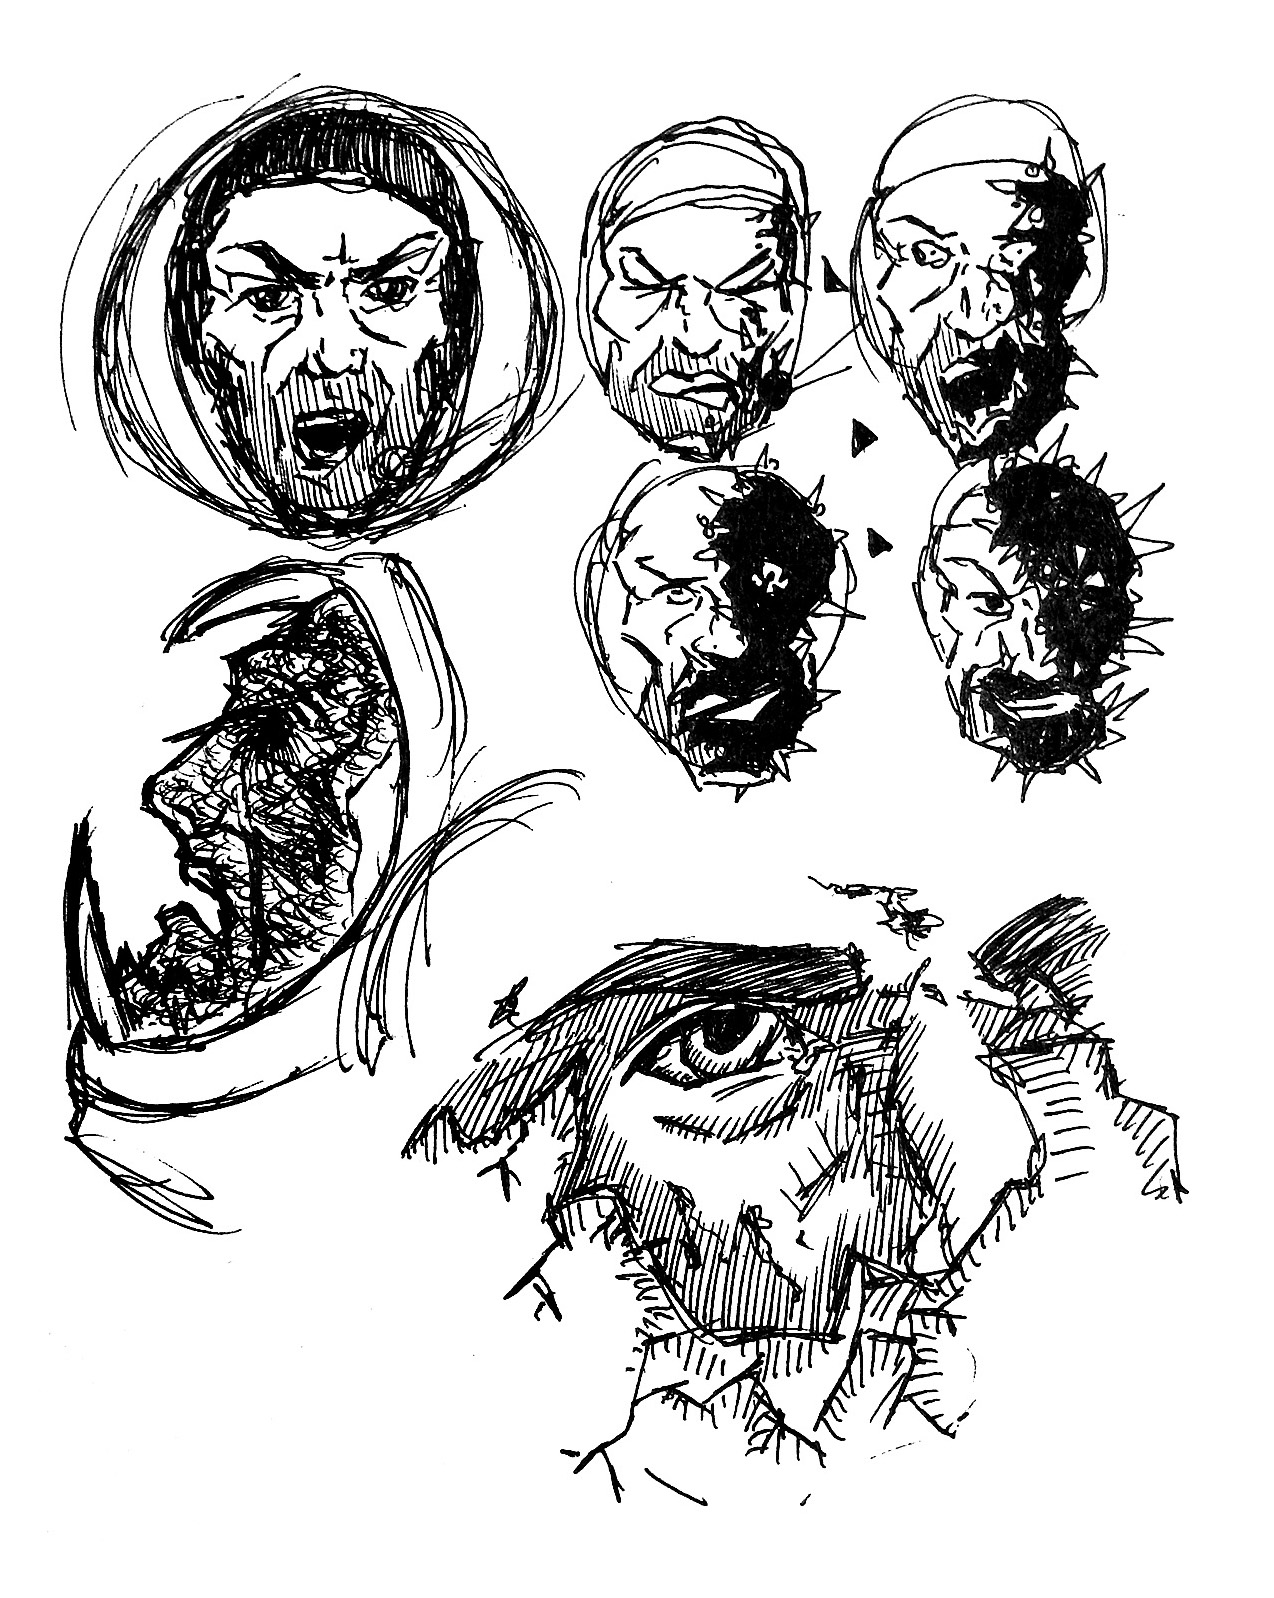 Moon Dust - Sketches (Old)